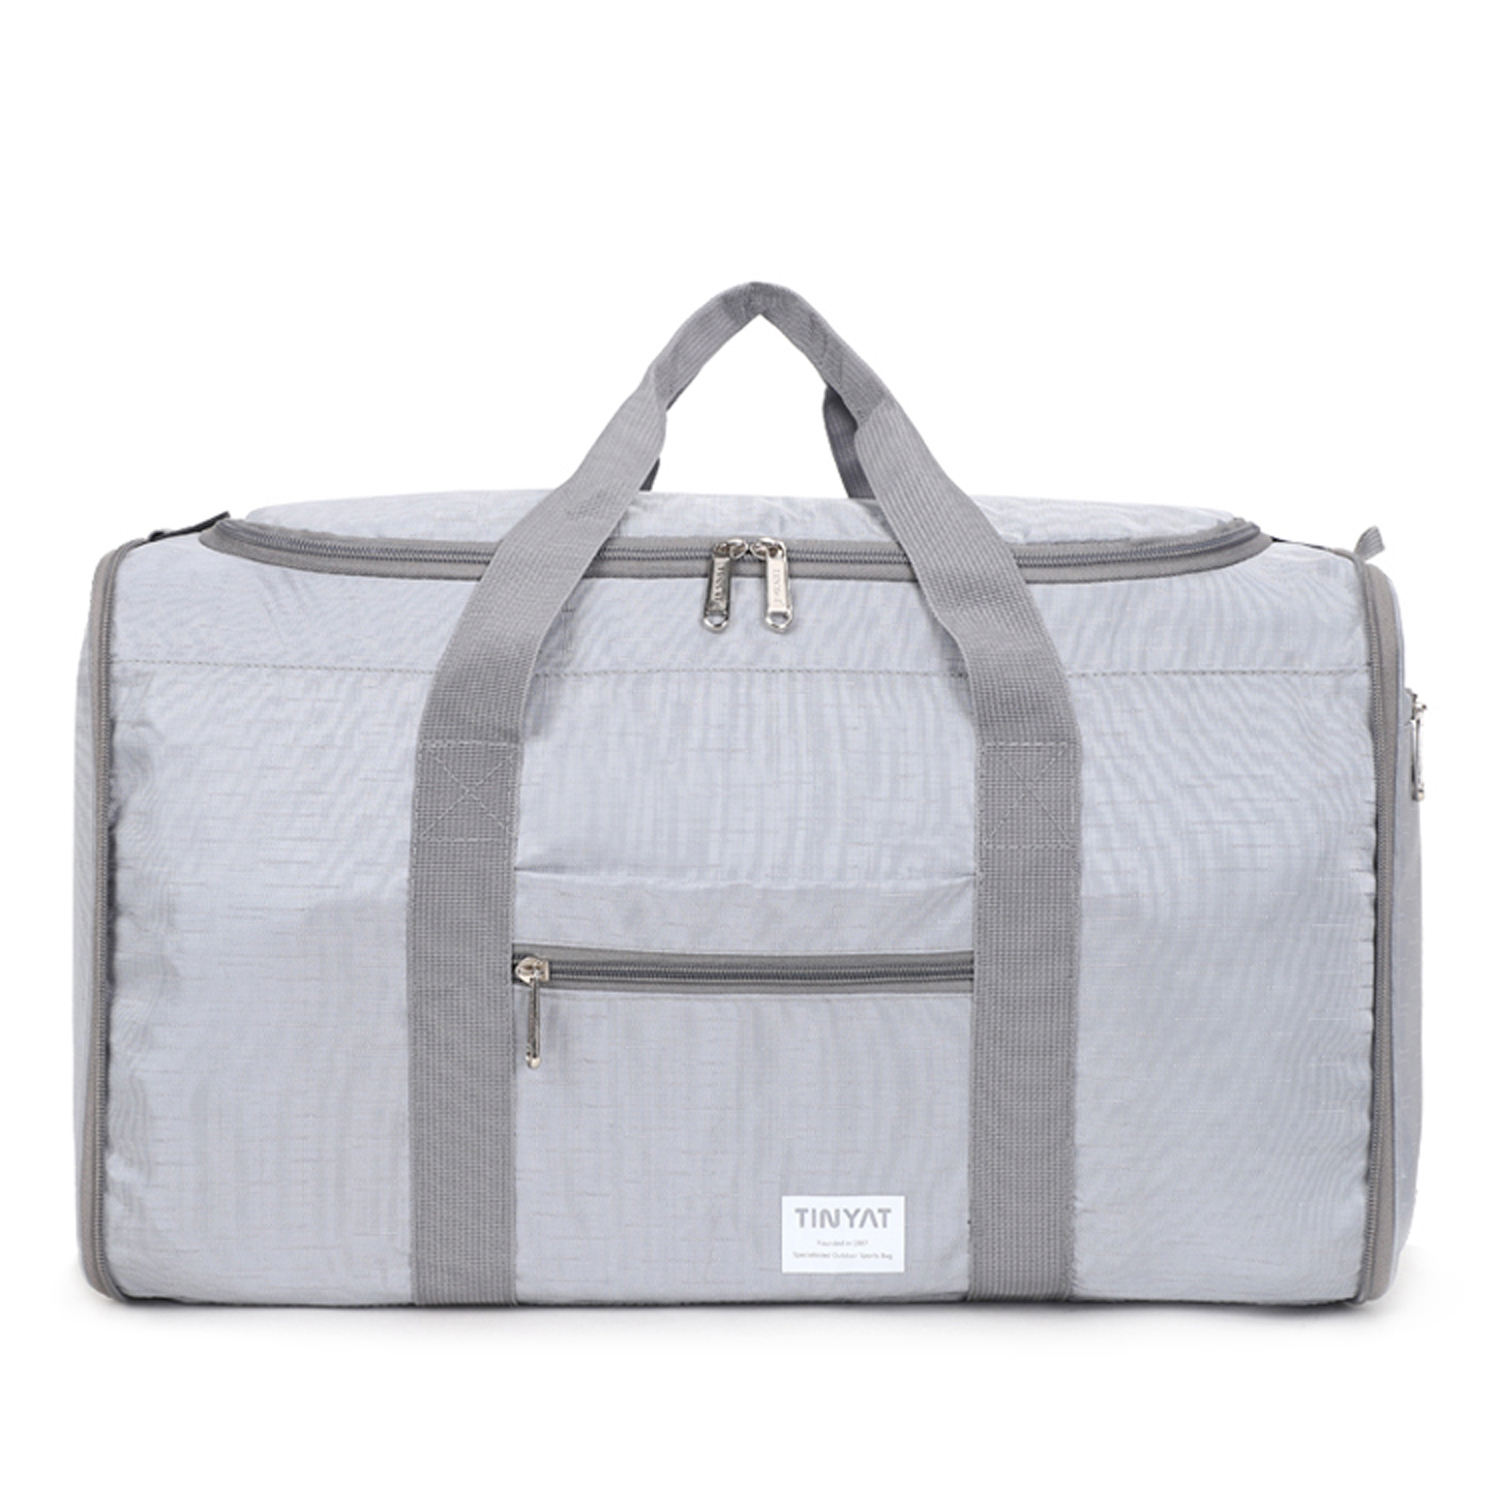 2020 Portable folding luggage portable boarding bag large capacity travel and business travel bag